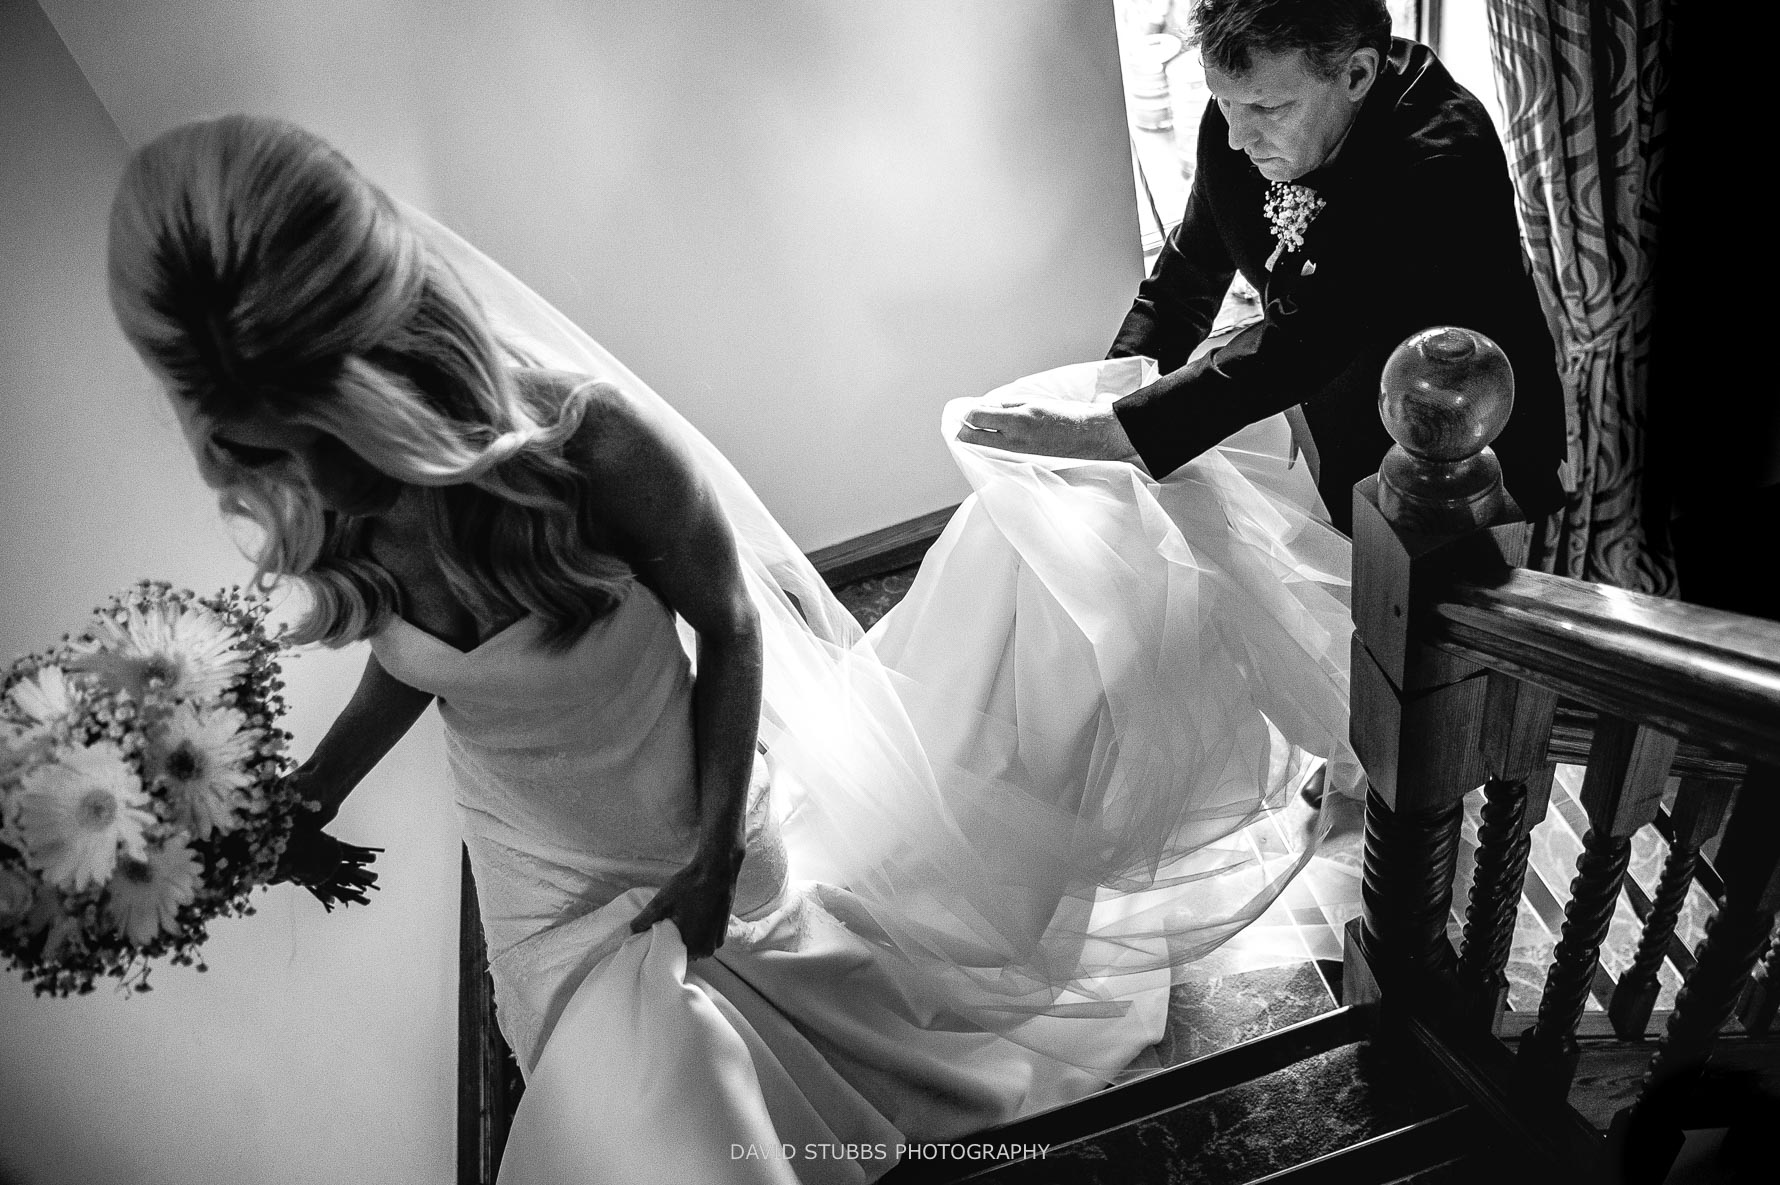 lifting the dress up the stairs